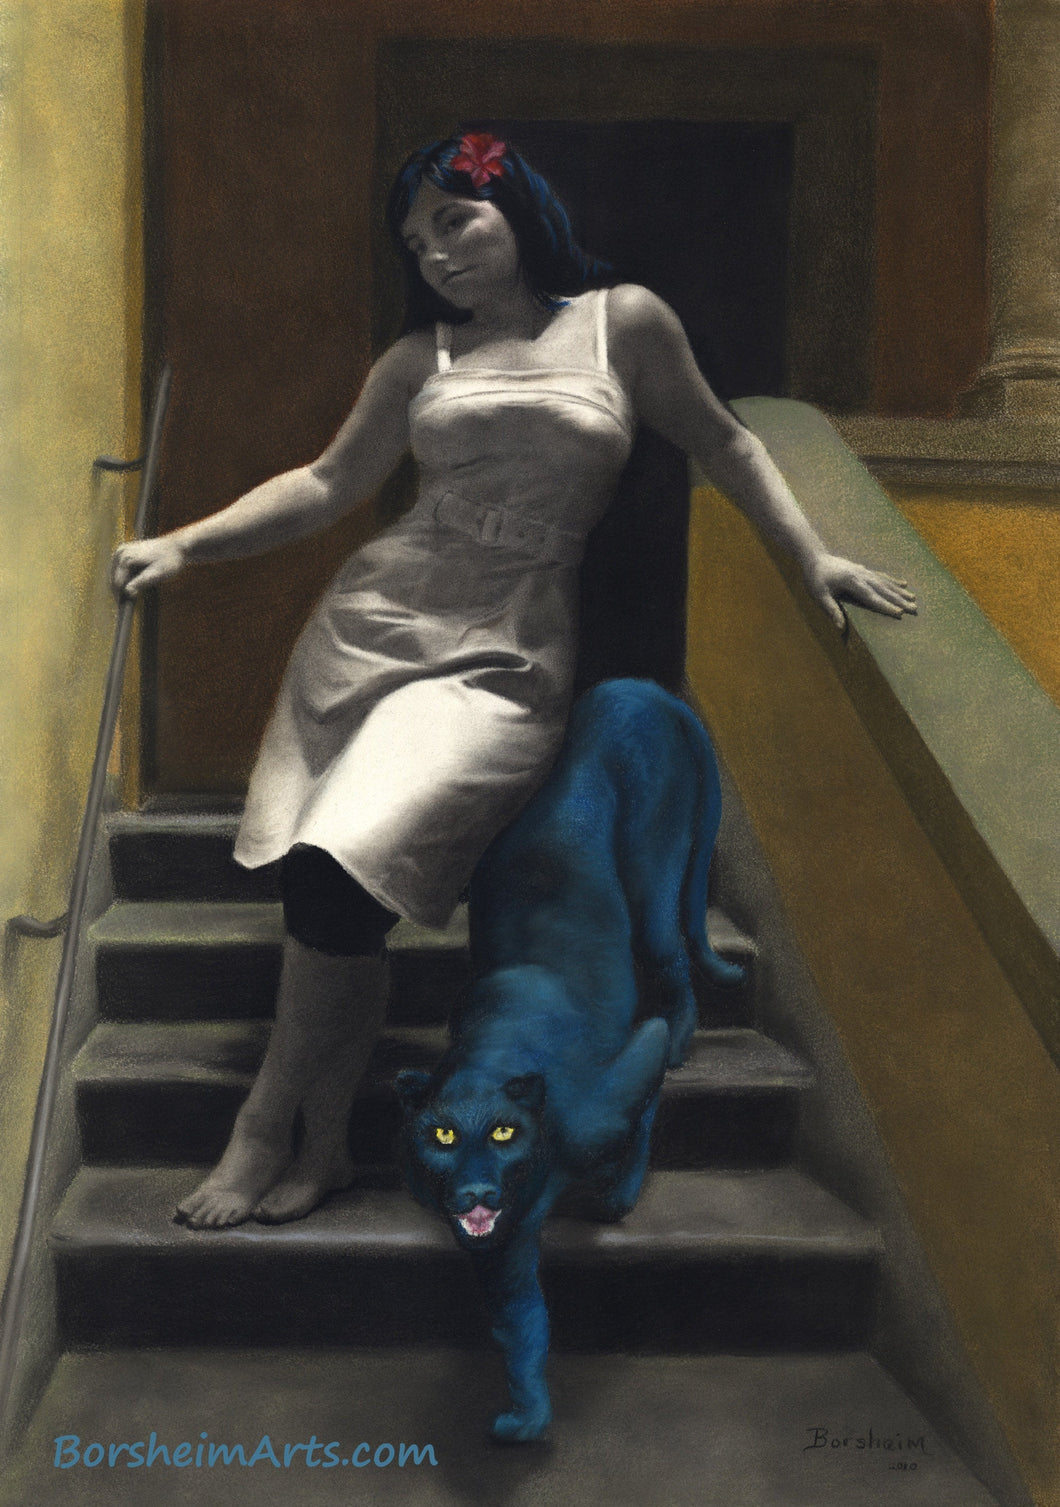 Le Scale dell'Eros [The Stairs of Love] Woman and Blue Panther Laws of Attraction - ORIGINAL Pastel Art